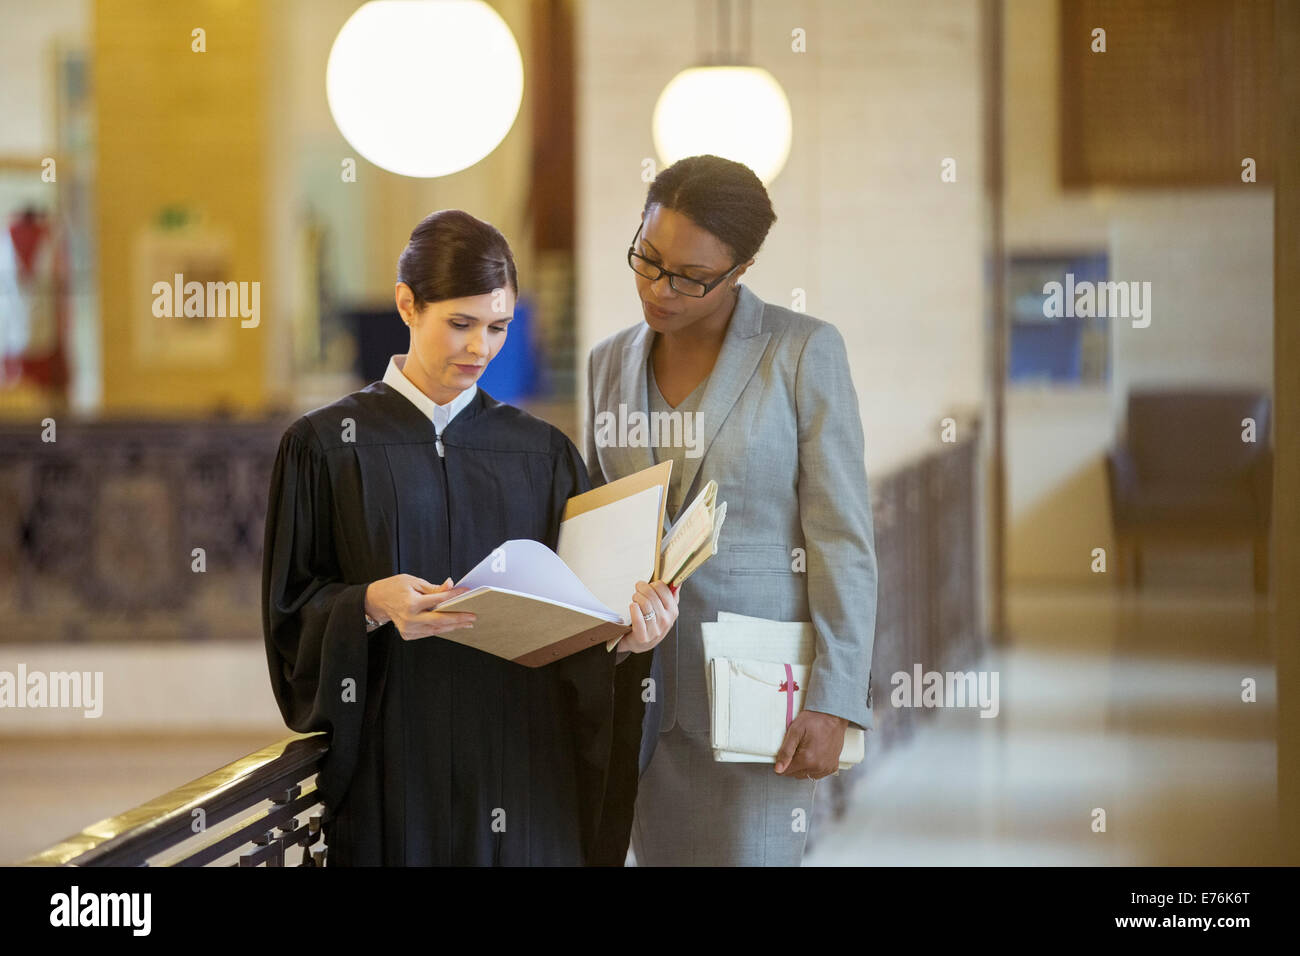 Judge and lawyer looking through documents - Stock Image